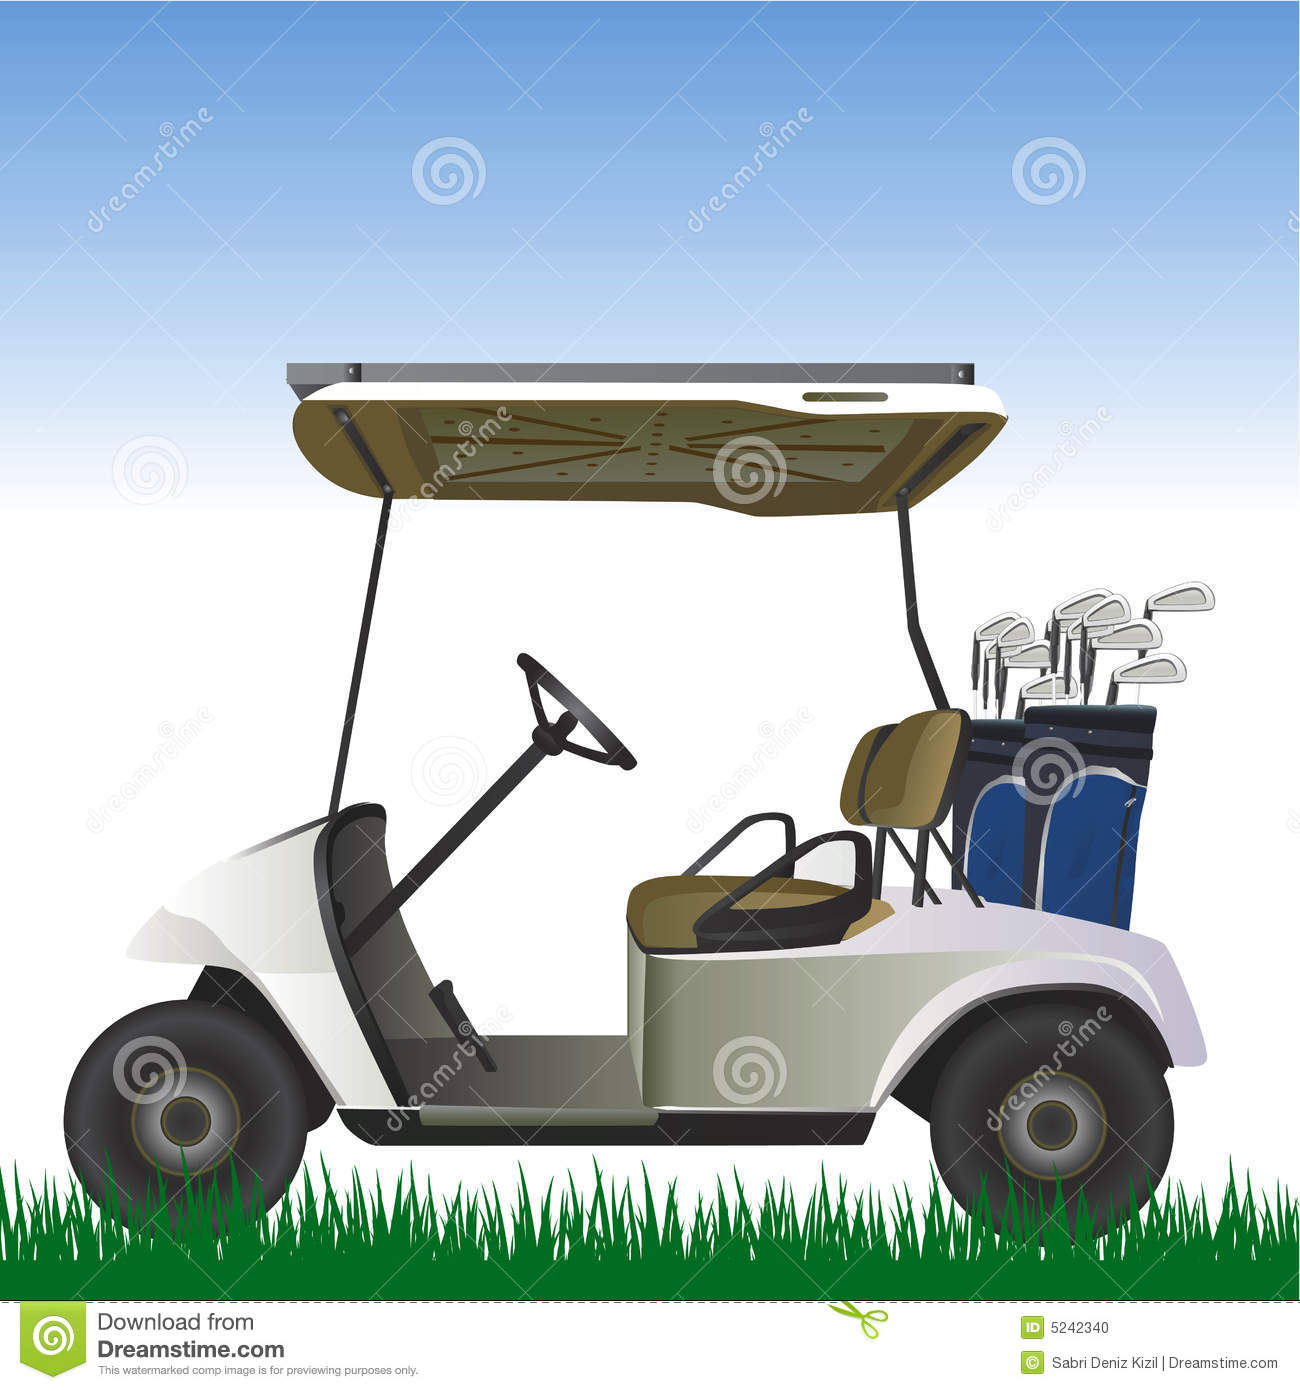 Golf Cart In The Field Vector Stock Vector - Illustration of relax Golf Cart Relaxing on exciting golf, natural golf, lazy golf, peaceful golf, cute golf, captain kangaroo golf, playing golf,